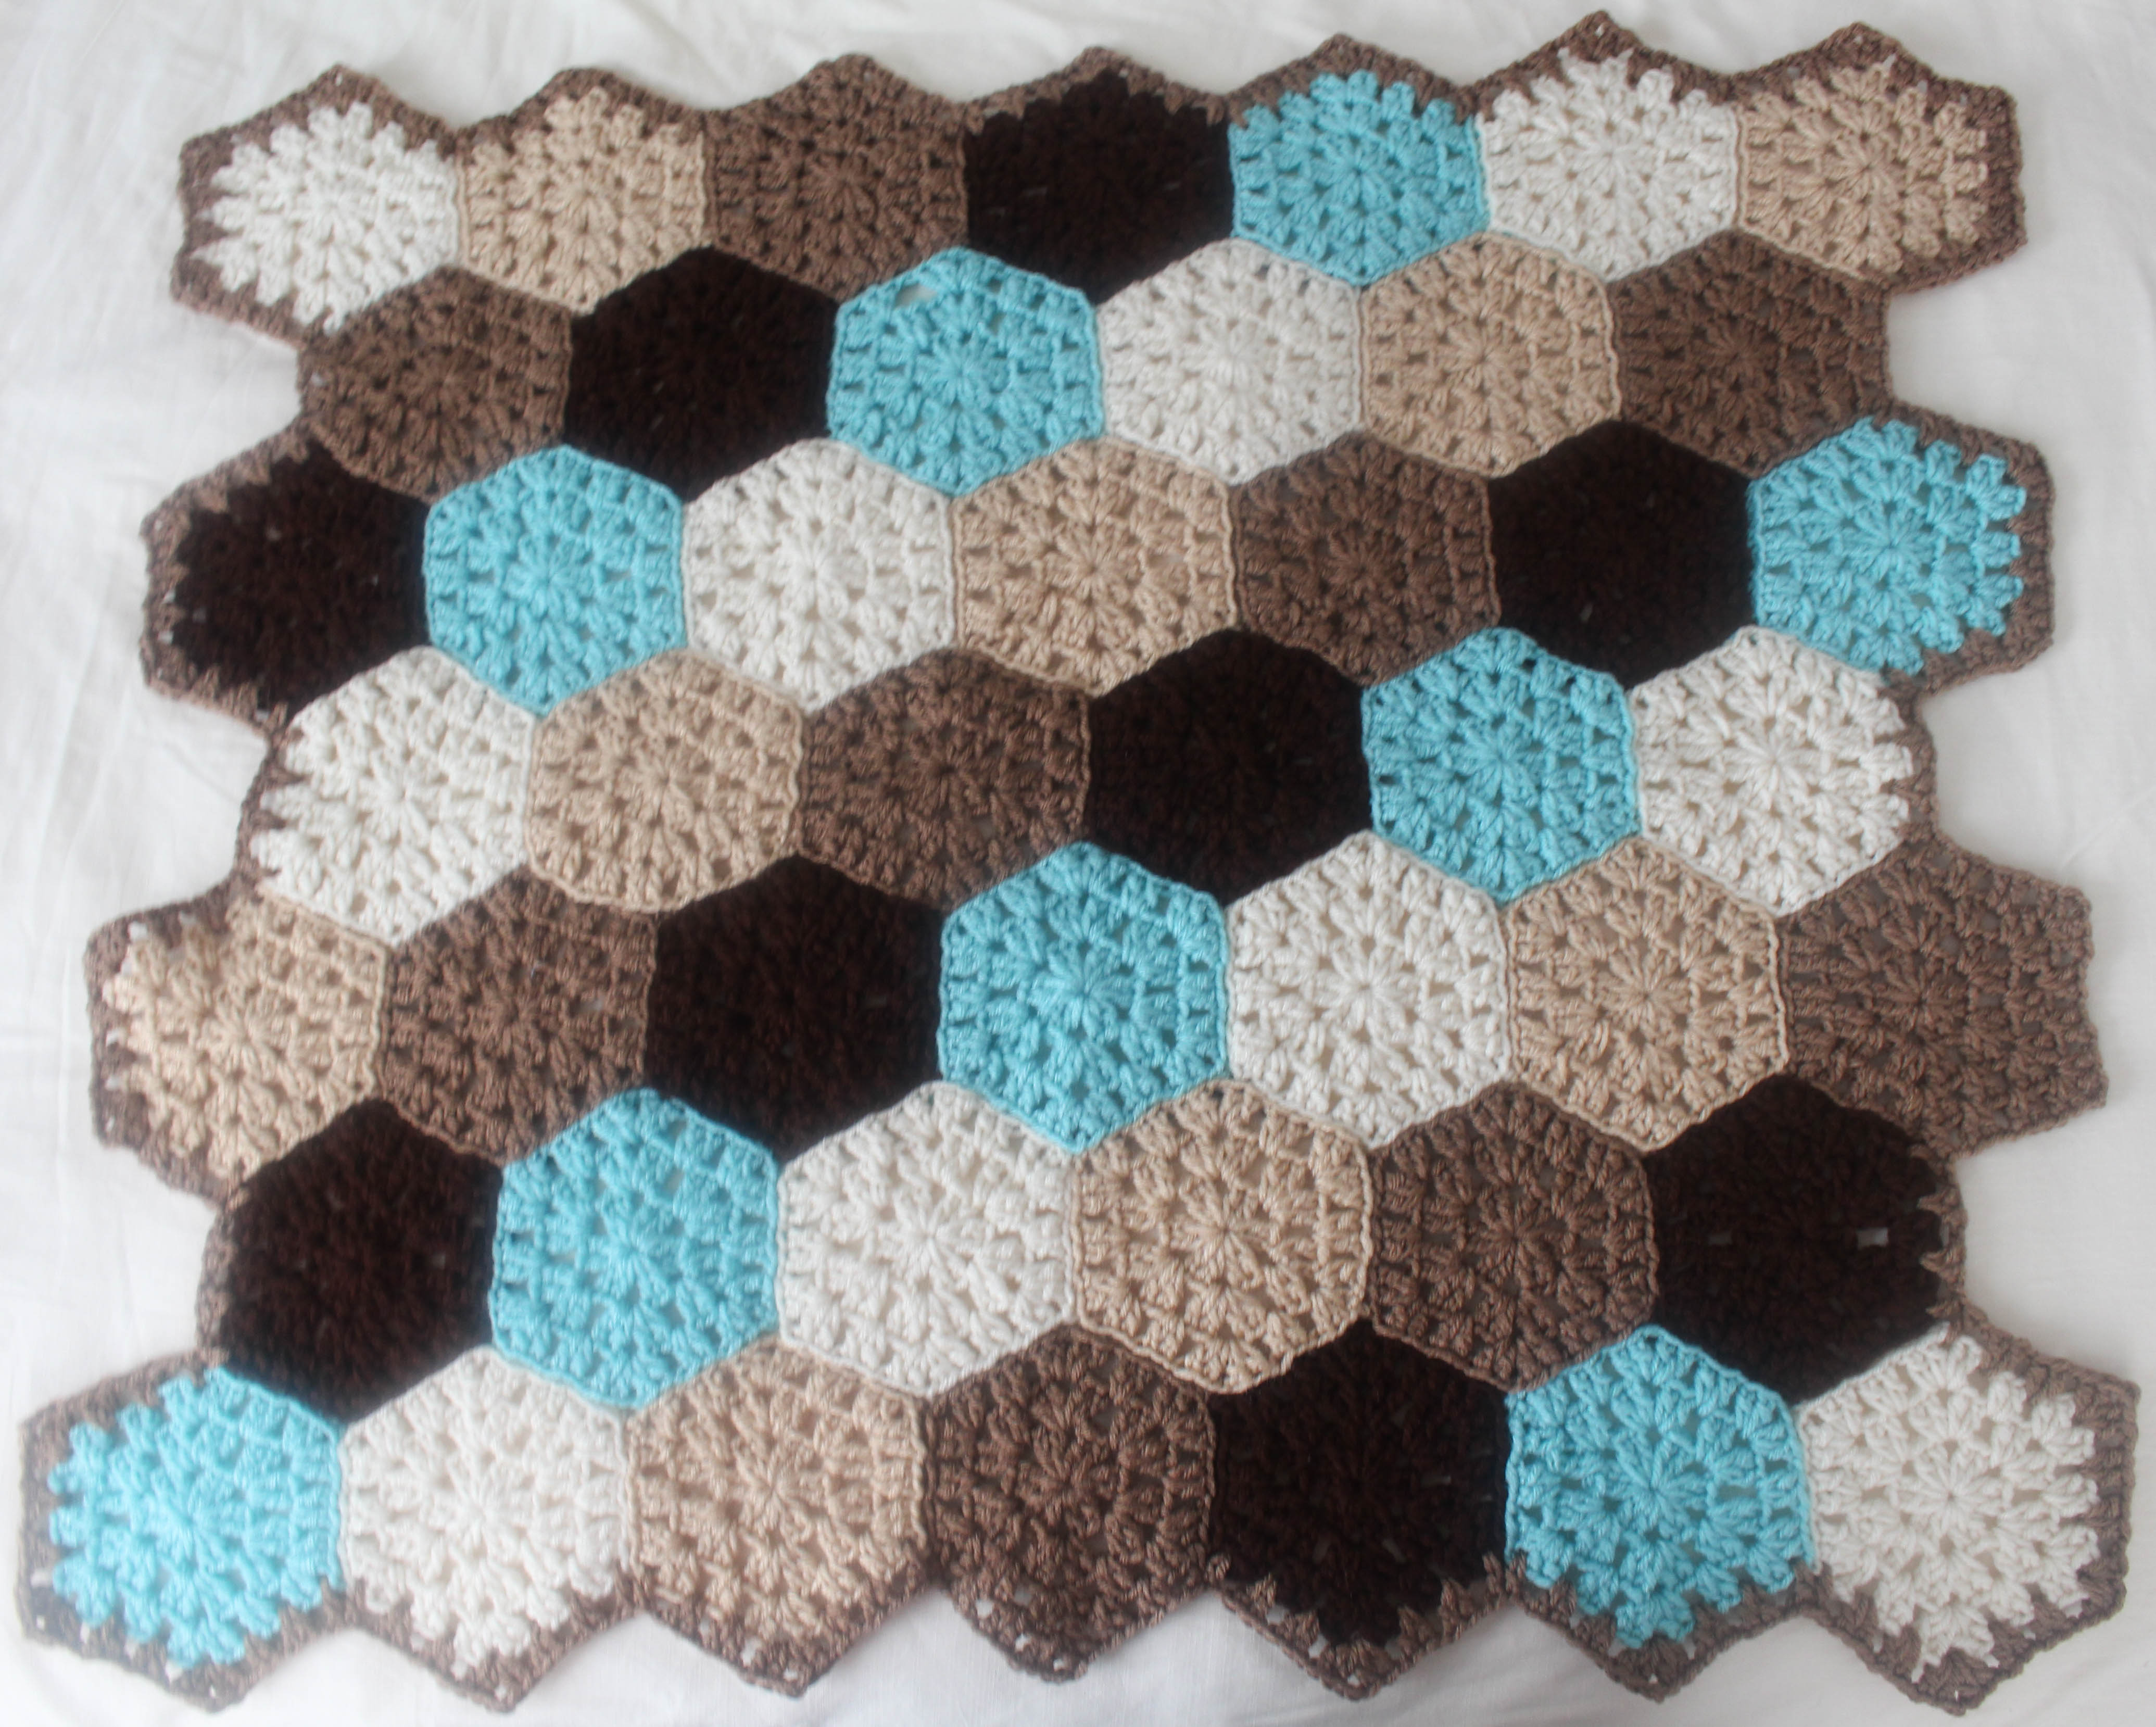 Free crochet pattern hexagon honeycomb stroller blanket stitch free crochet pattern hexagon honeycomb stroller blanket by underground crafter for stitch and unwind bankloansurffo Image collections